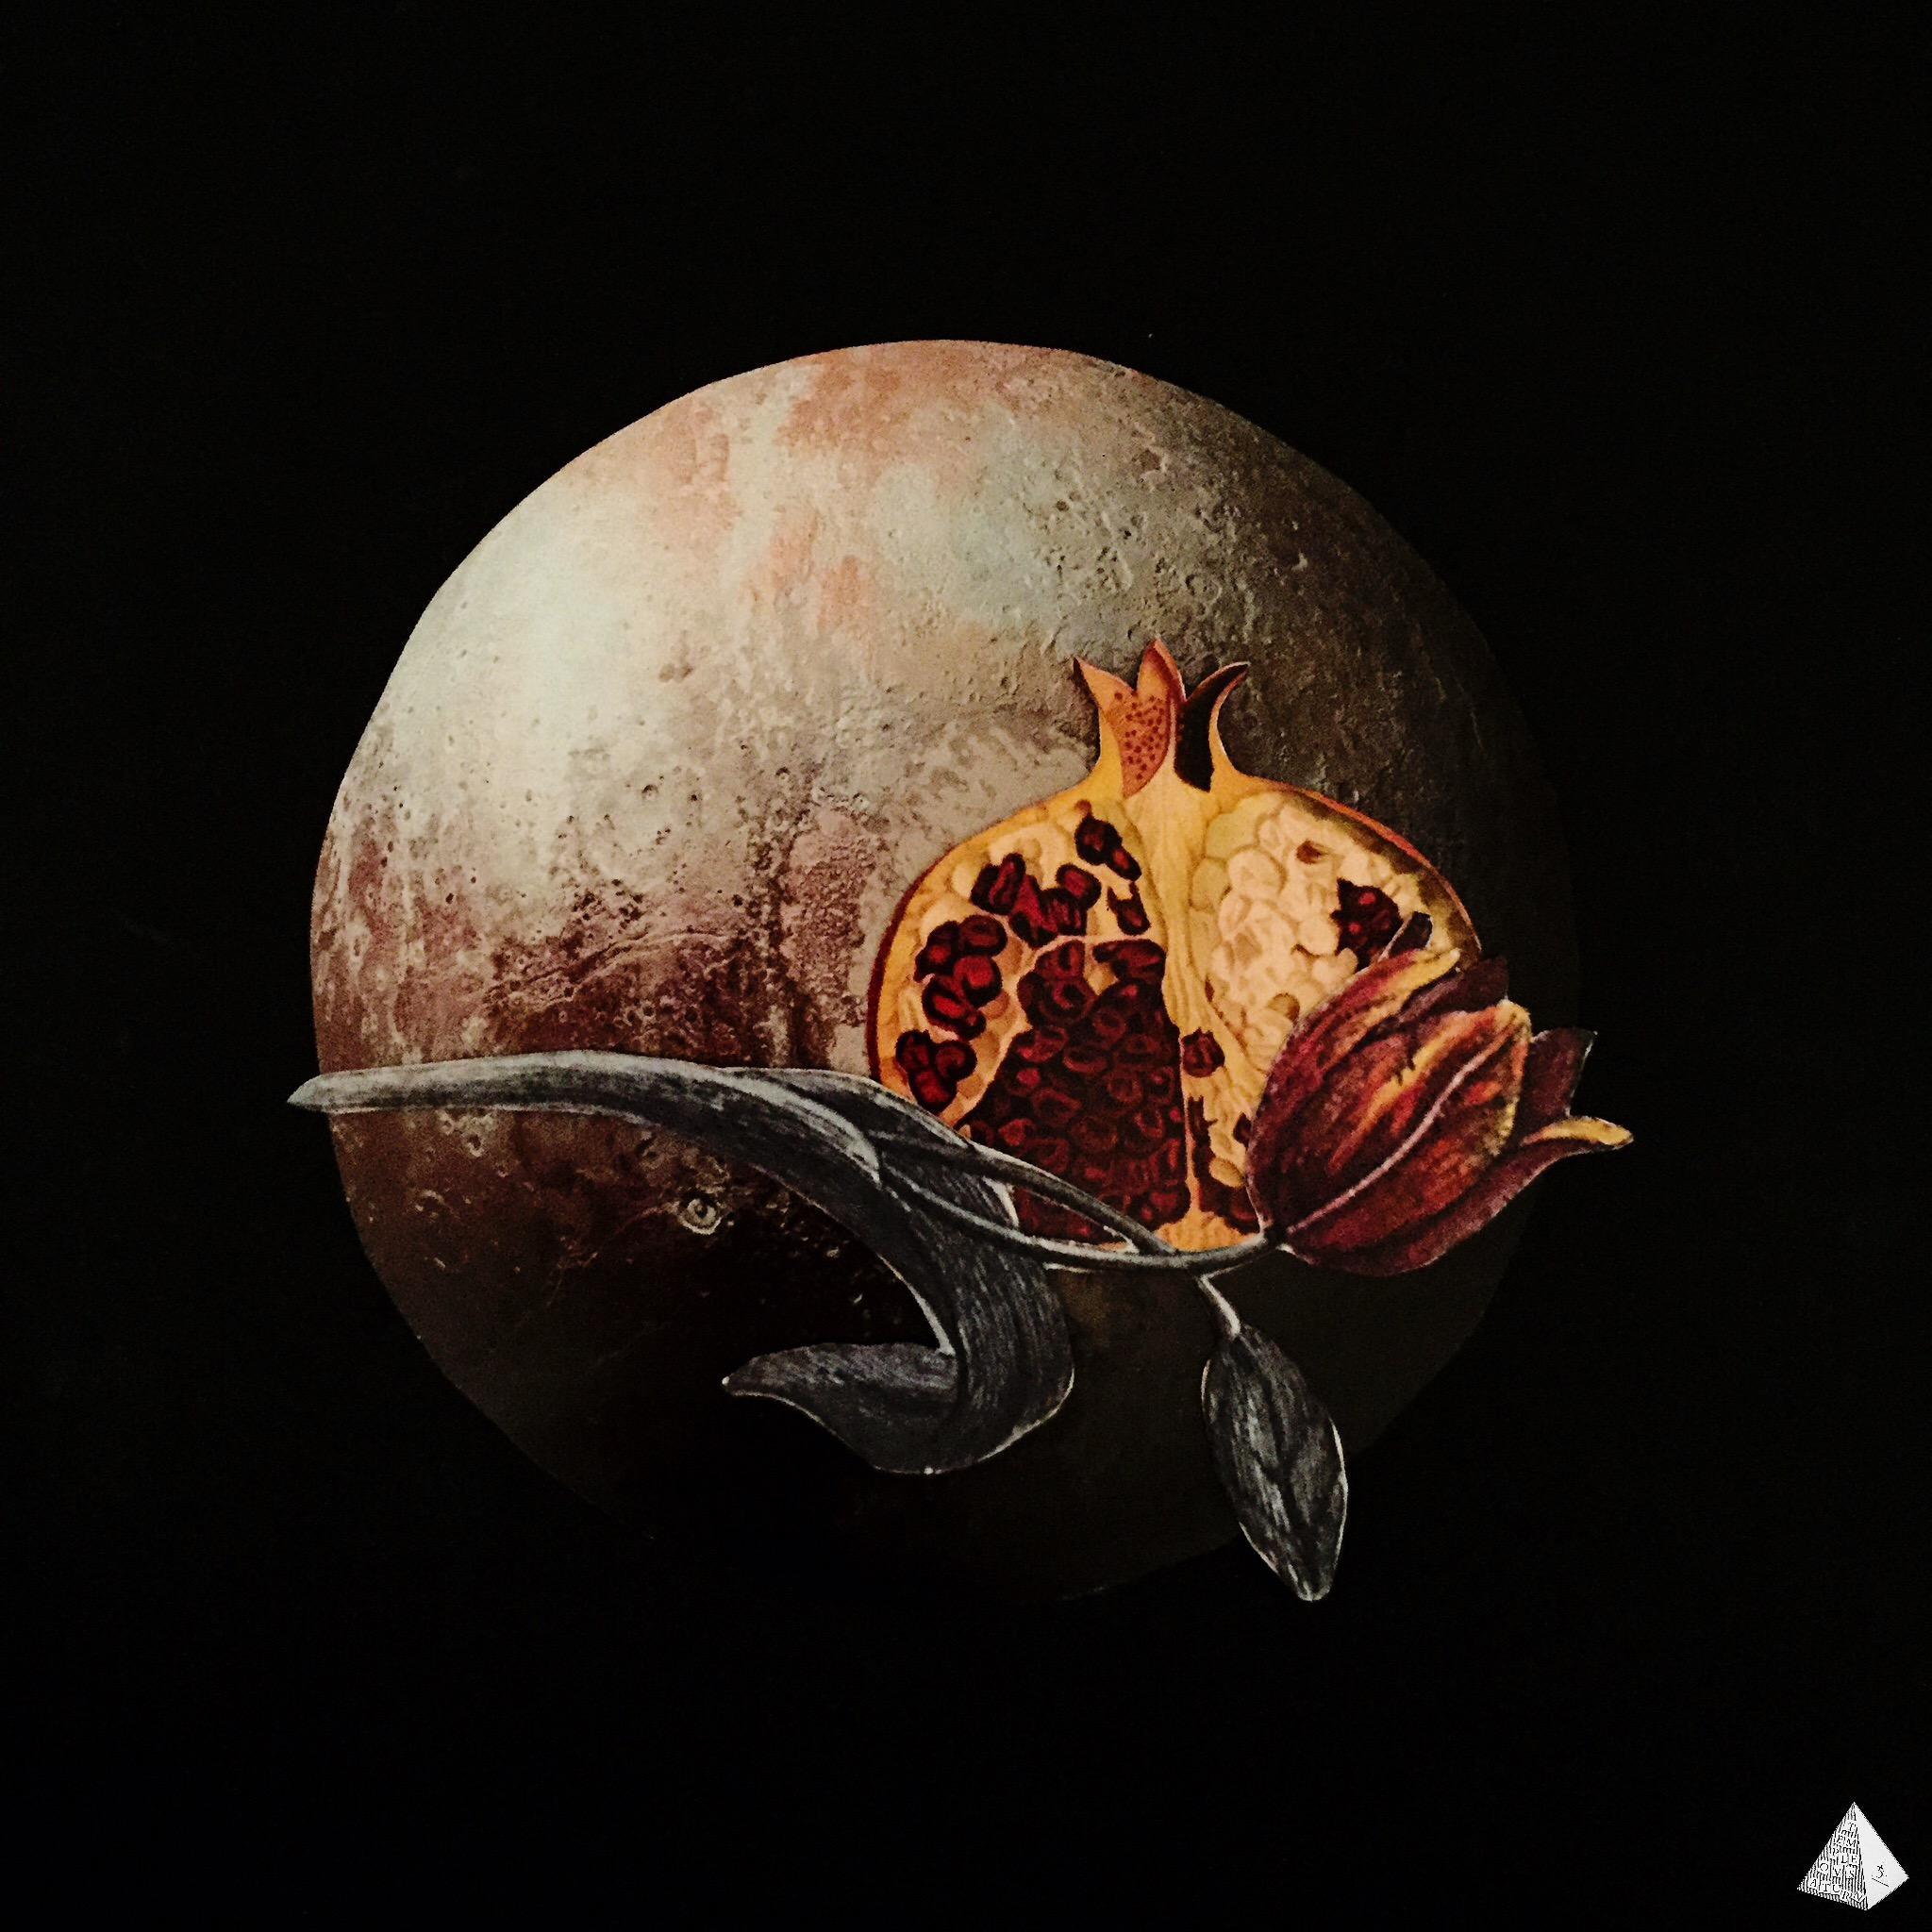 Pluto by Joan Pope (Temple ov Saturn)